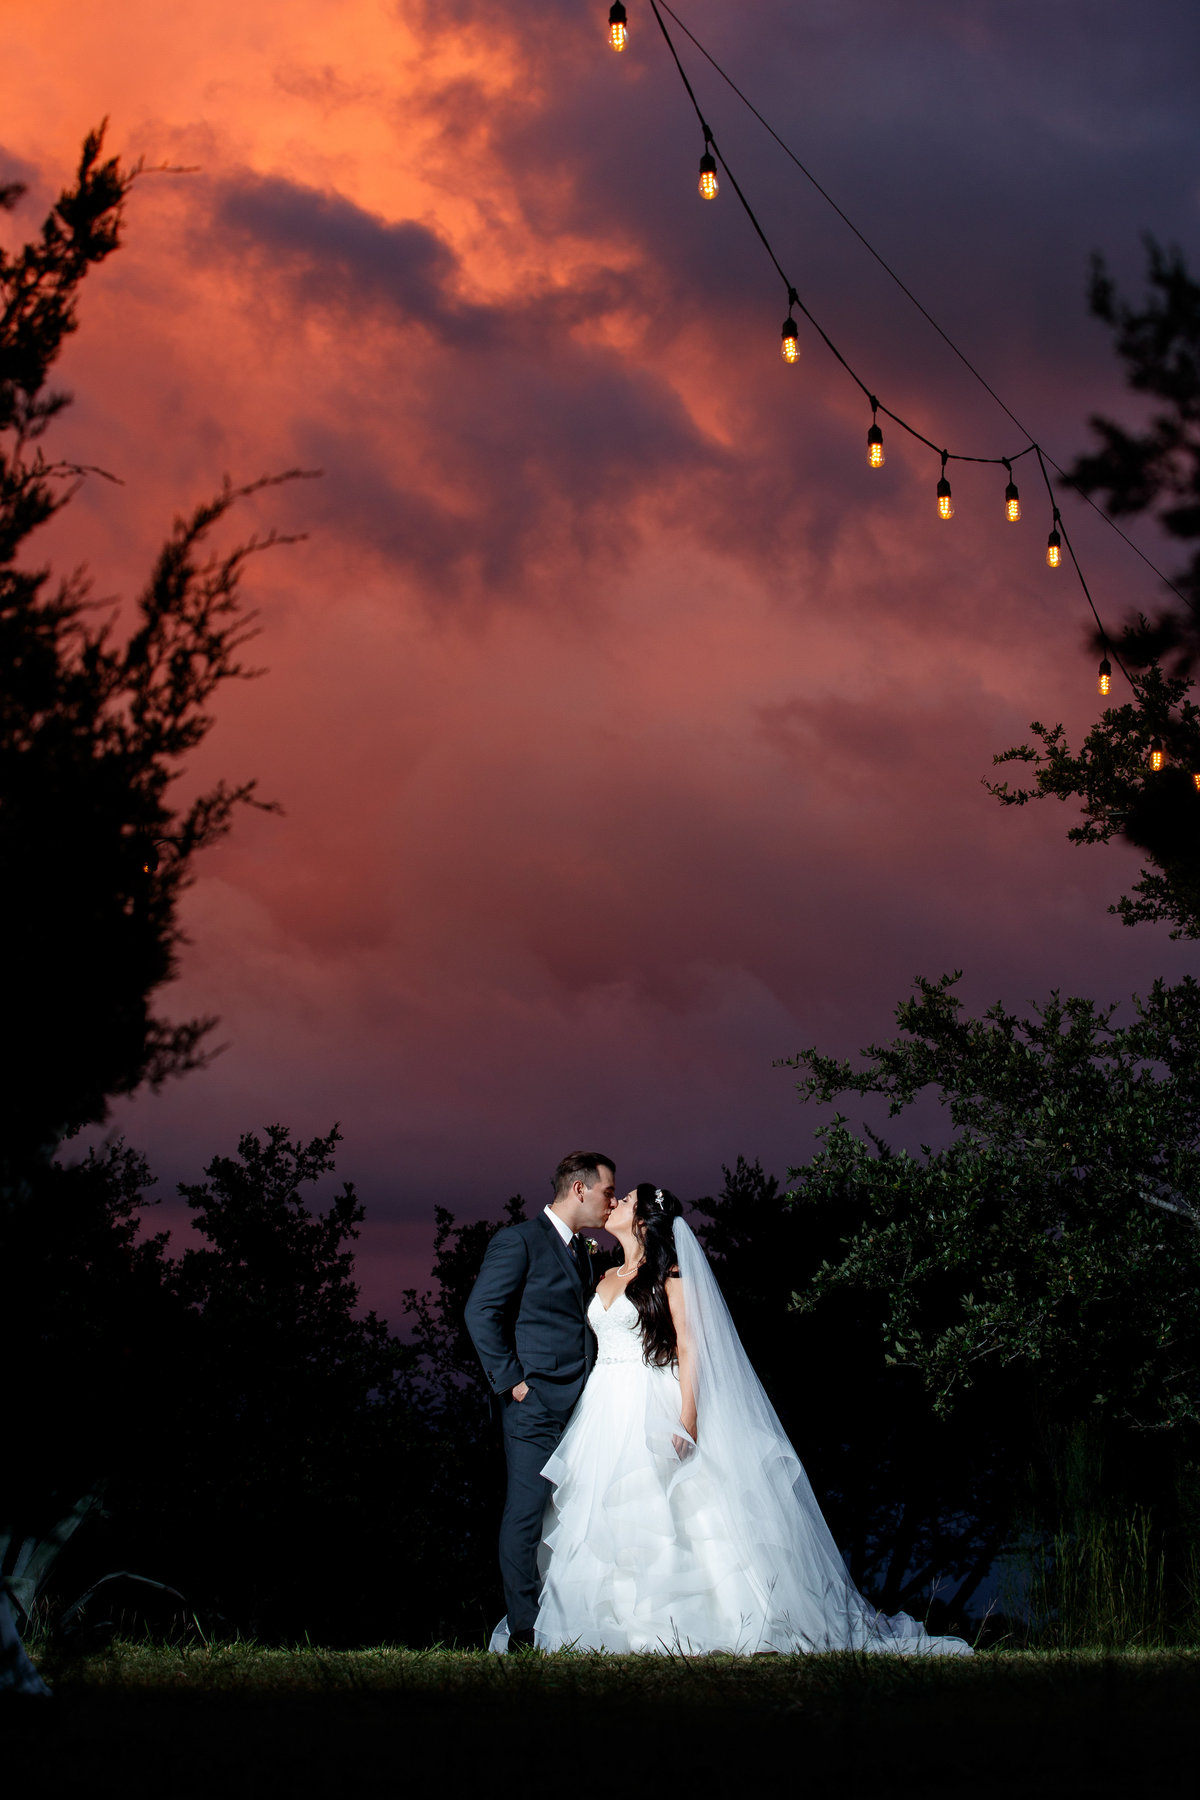 terrace club wedding photographer amazing sunset bride groom kiss 2600 US-290, Dripping Springs, TX 78620